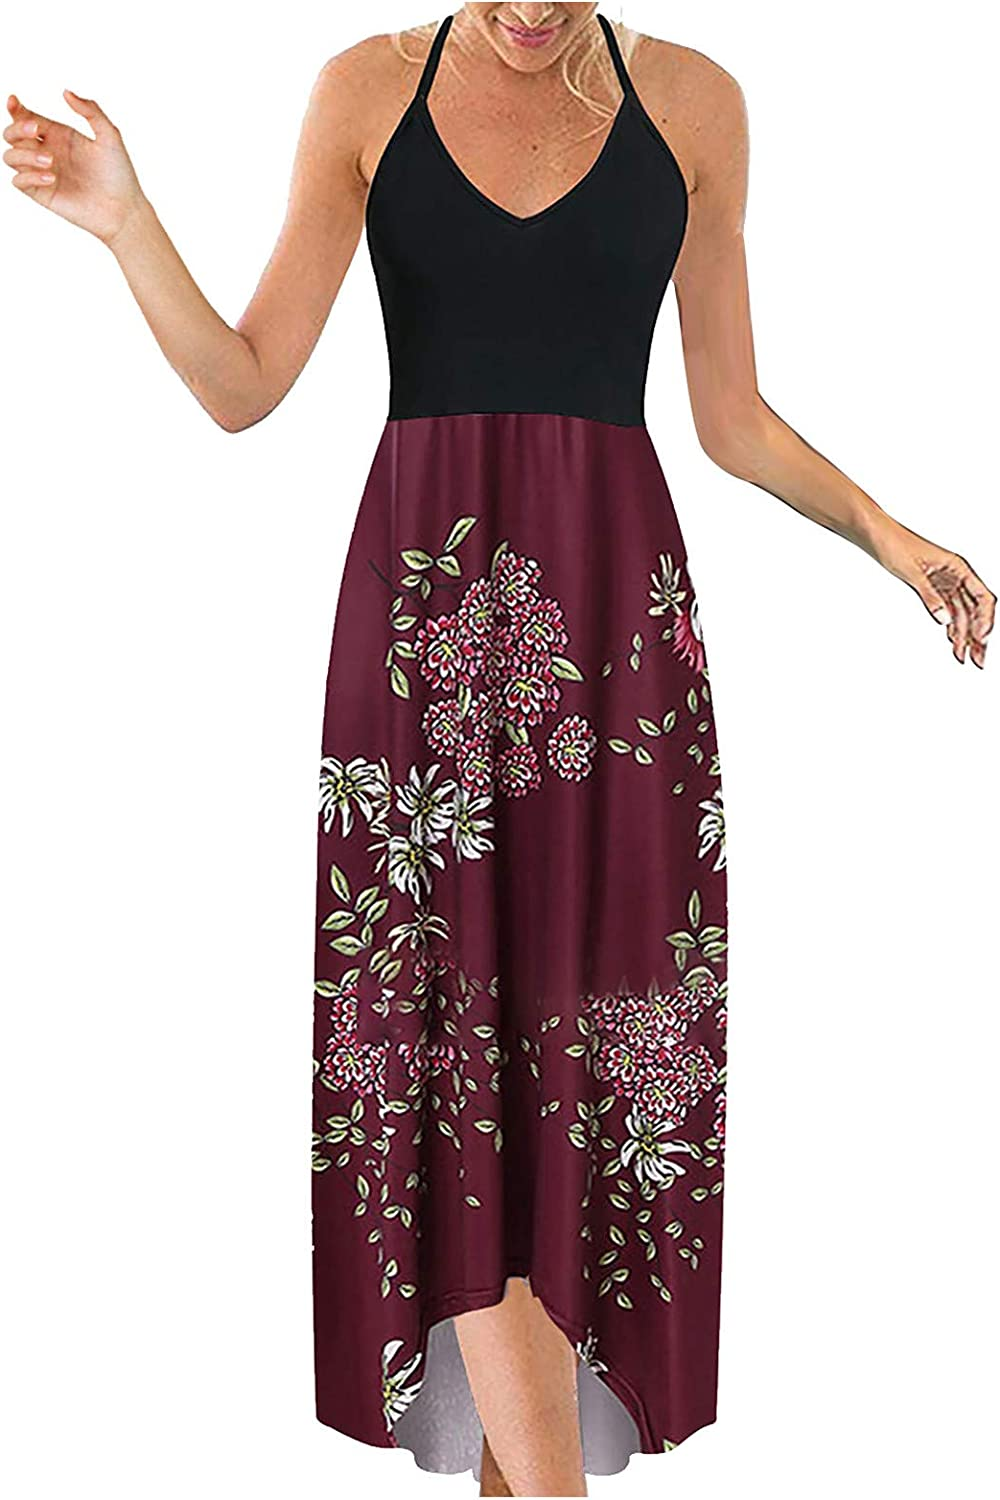 Dresses for Women Casual, Women's Fashion Casual V-Collar Sleeveless Strap Open Back Sexy Printing Long Dresses